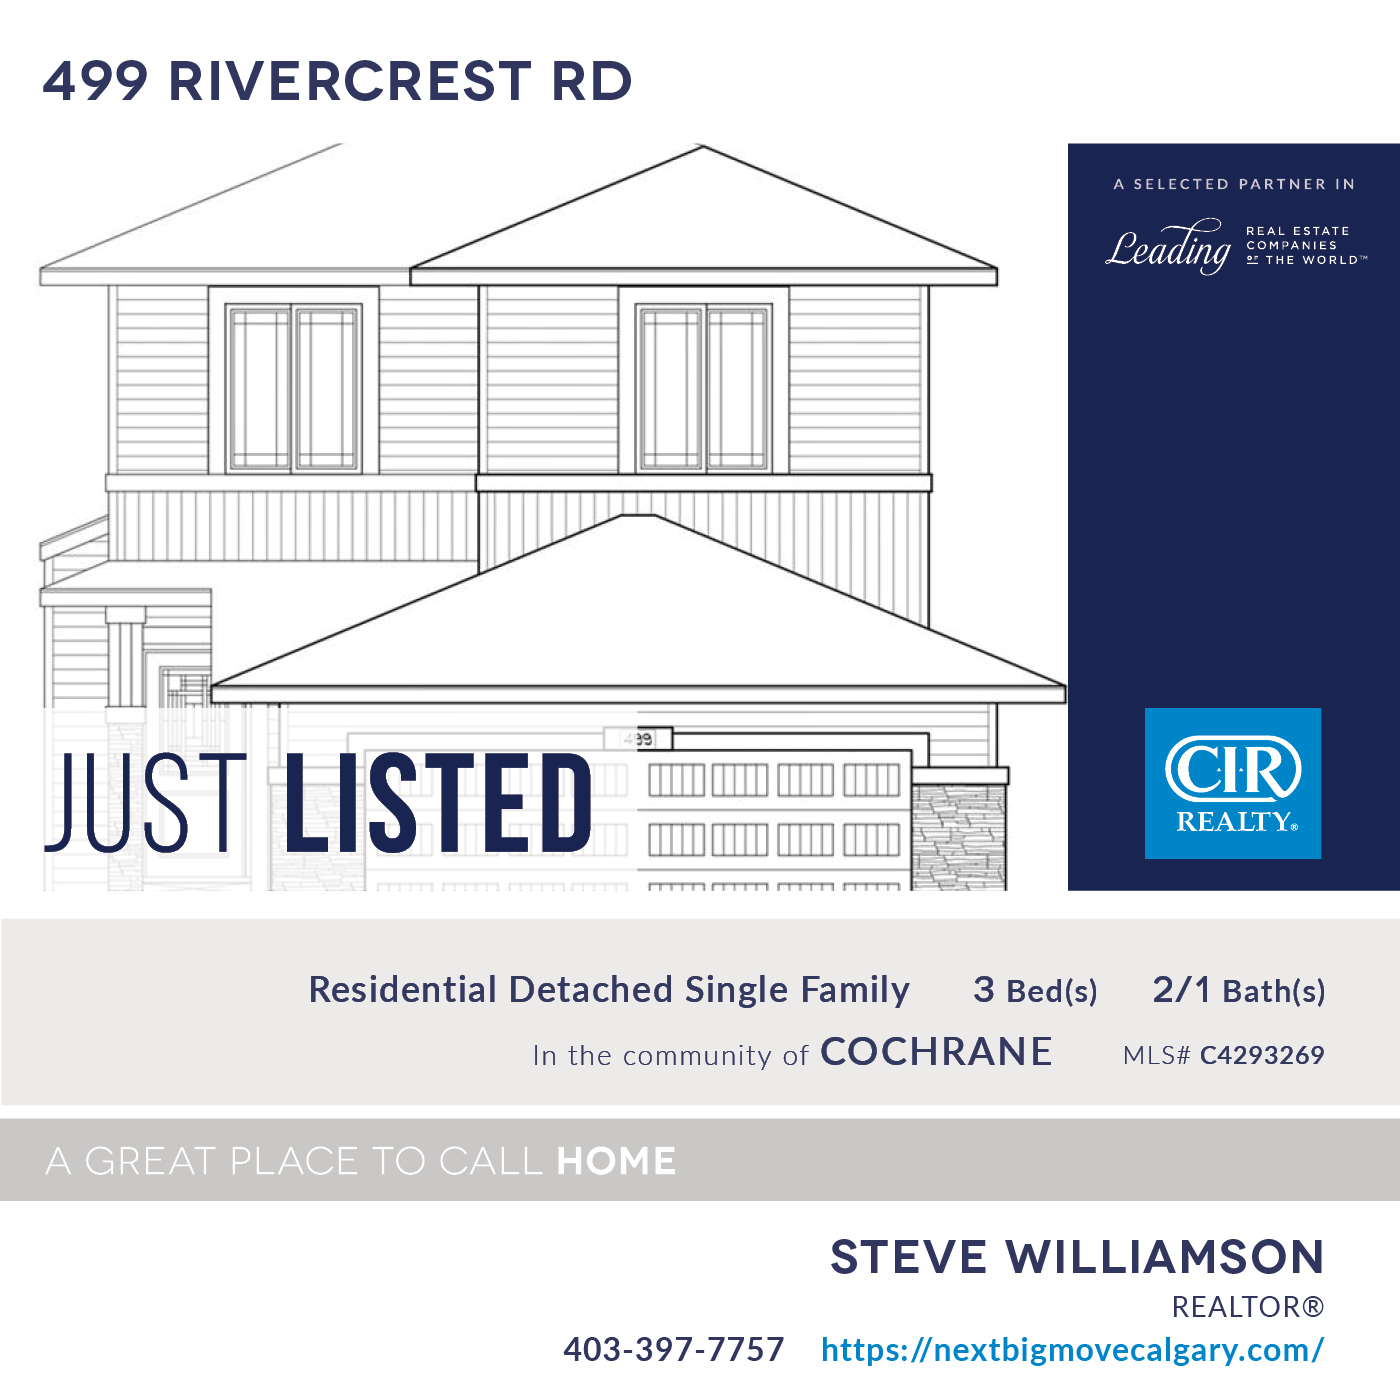 Just Listed - 499 Rivercrest Rd Cochrane